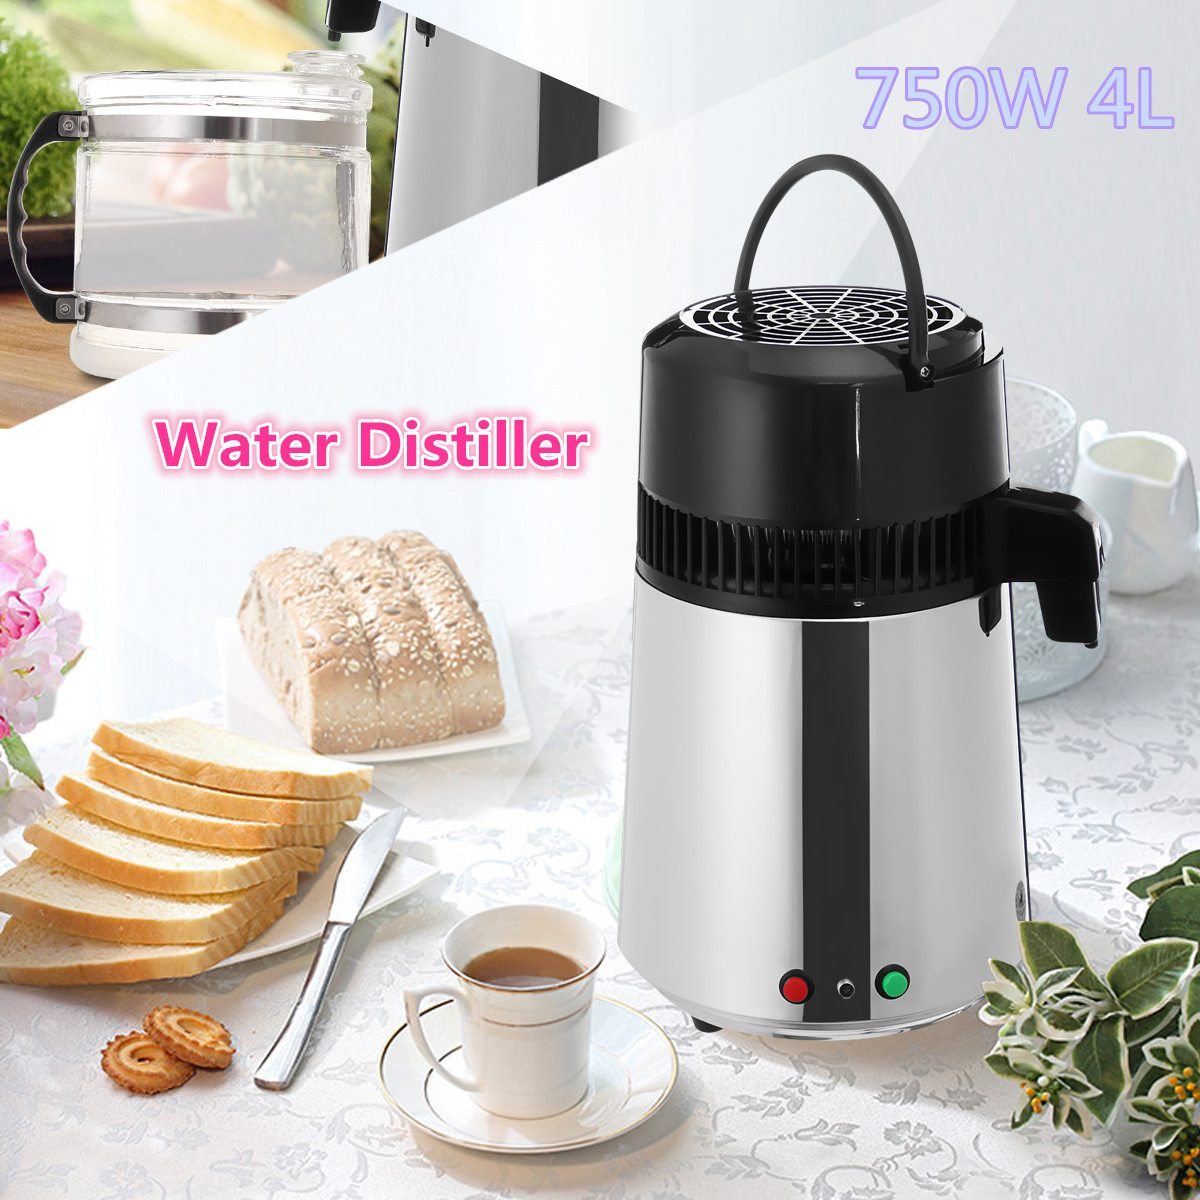 750W 4L Pure Distiller Distilled Water Machine Household Stainless Steel Water Purifier Container Filter Distilled Water Machine|Water Filters| - AliExpress